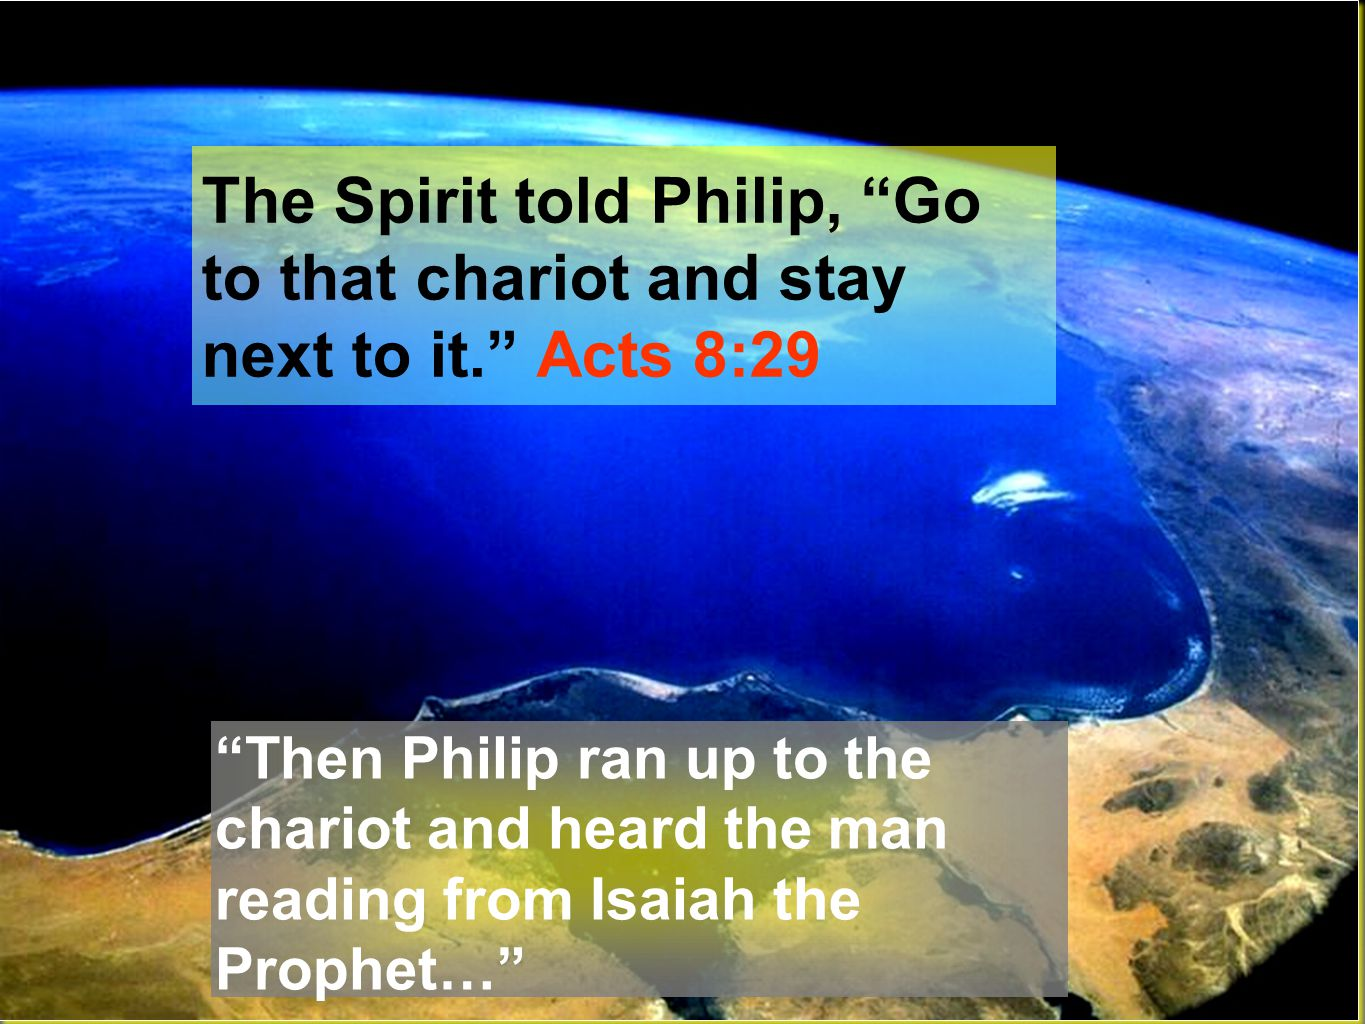 The Spirit told Philip, Go to that chariot and stay next to it. Acts 8:29 Then Philip ran up to the chariot and heard the man reading from Isaiah the Prophet…